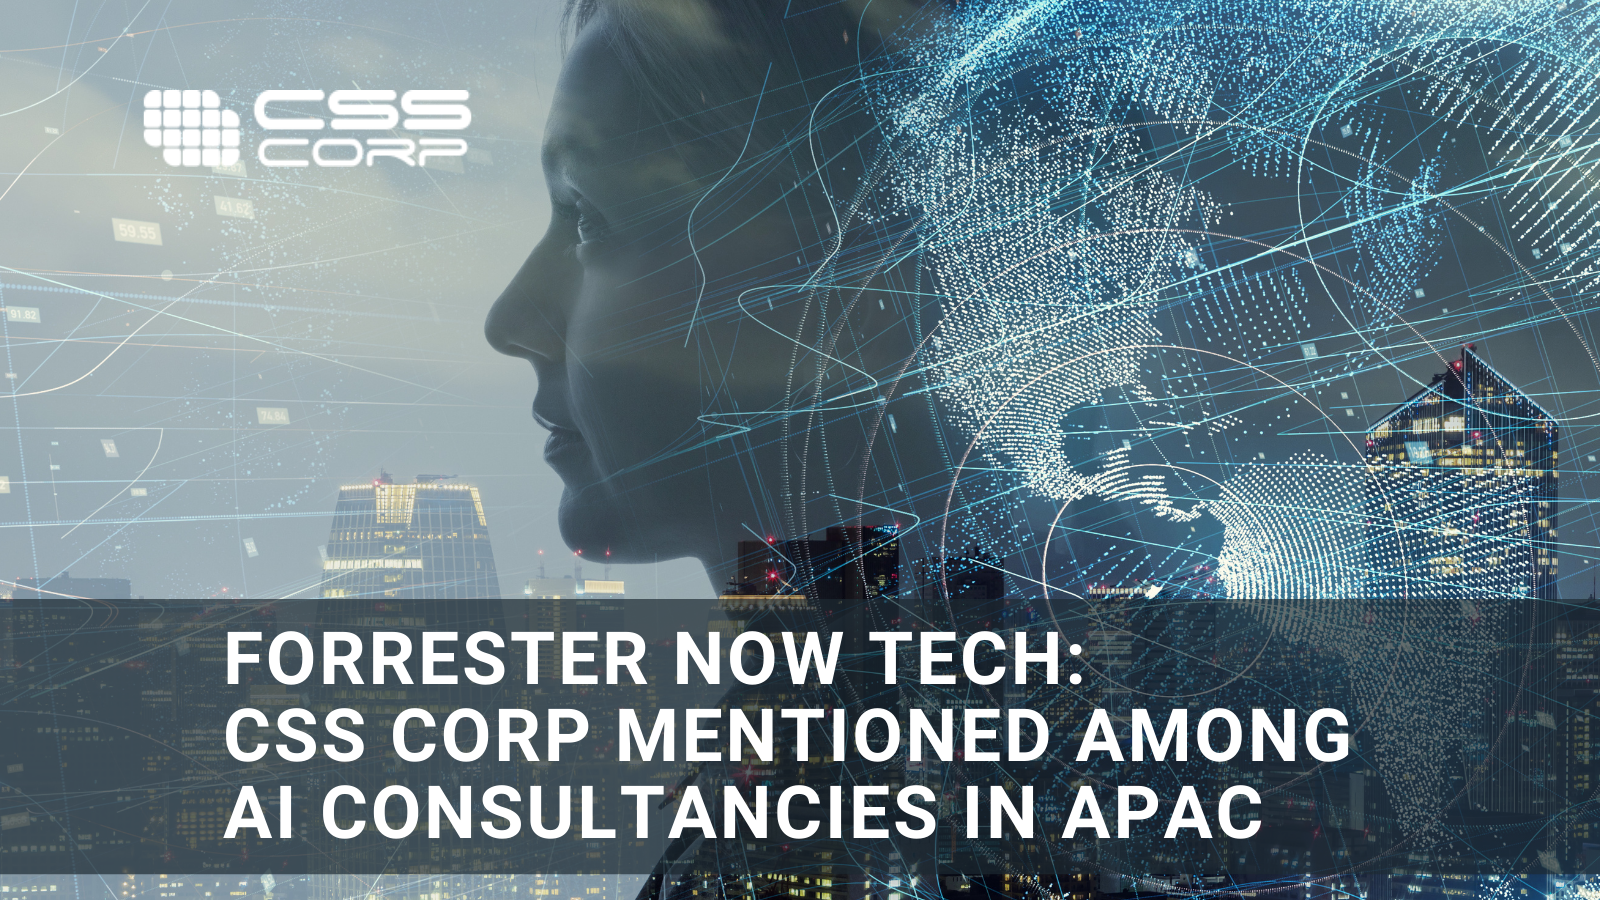 Forrester mentionsCSS Corp among AI consultancies with dedicated expertise and offerings